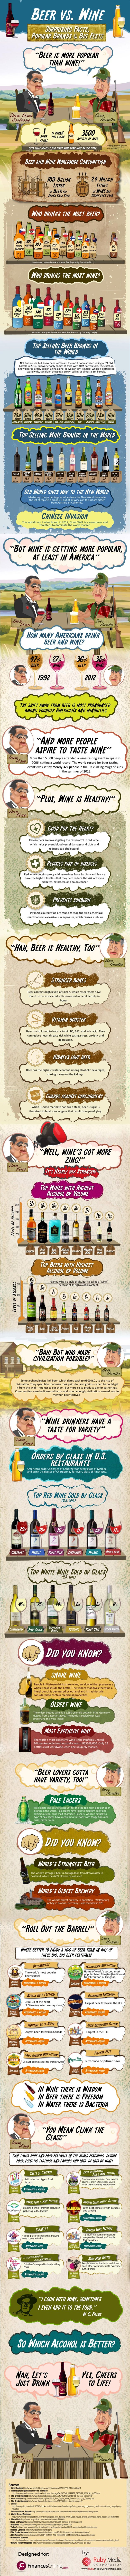 wine-versus-beer-infographic